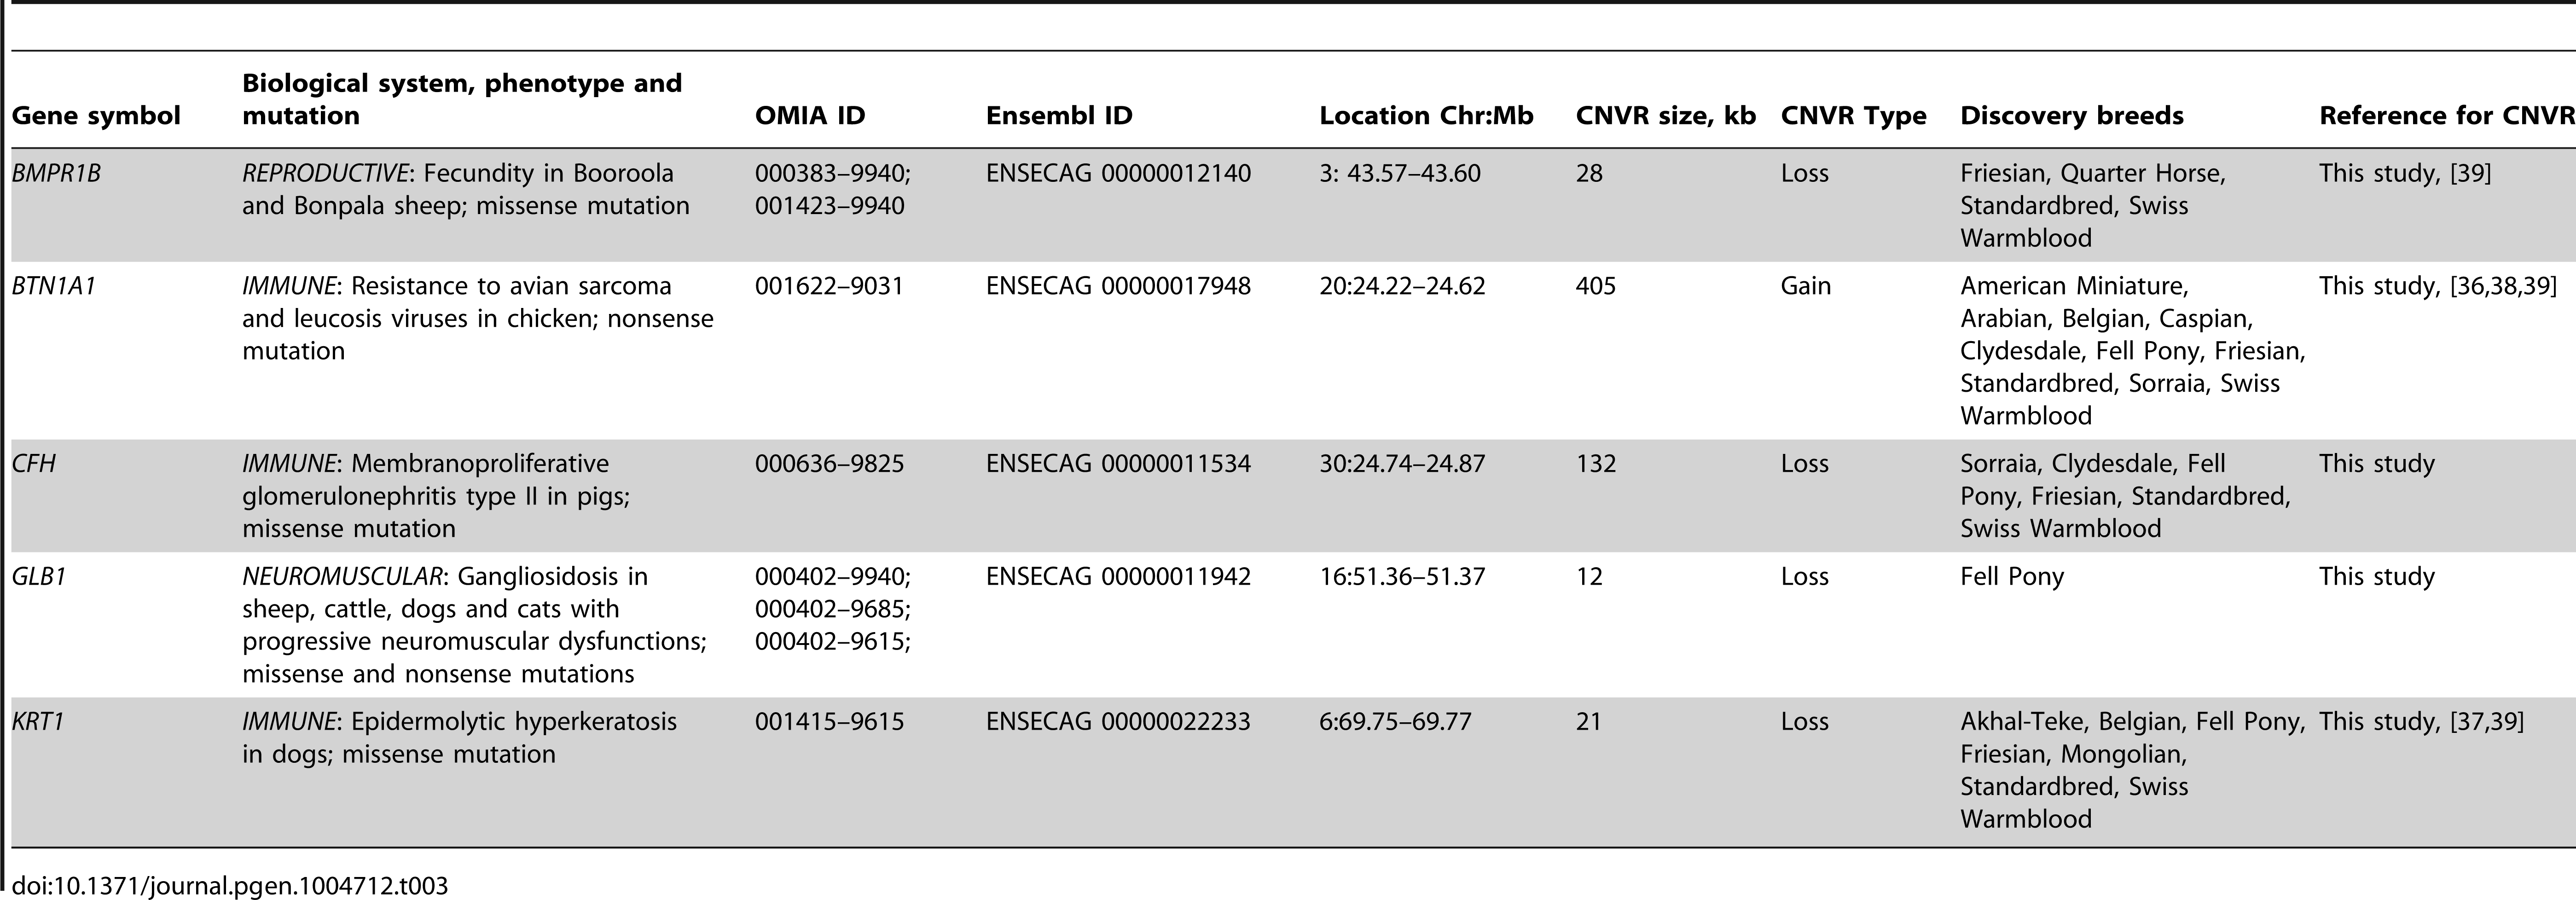 """Equine copy number variable genes with known mammalian phenotypes (OMIA; <a href=""""http://omia.angis.org.au/home/"""">http://omia.angis.org.au/home/</a>)."""